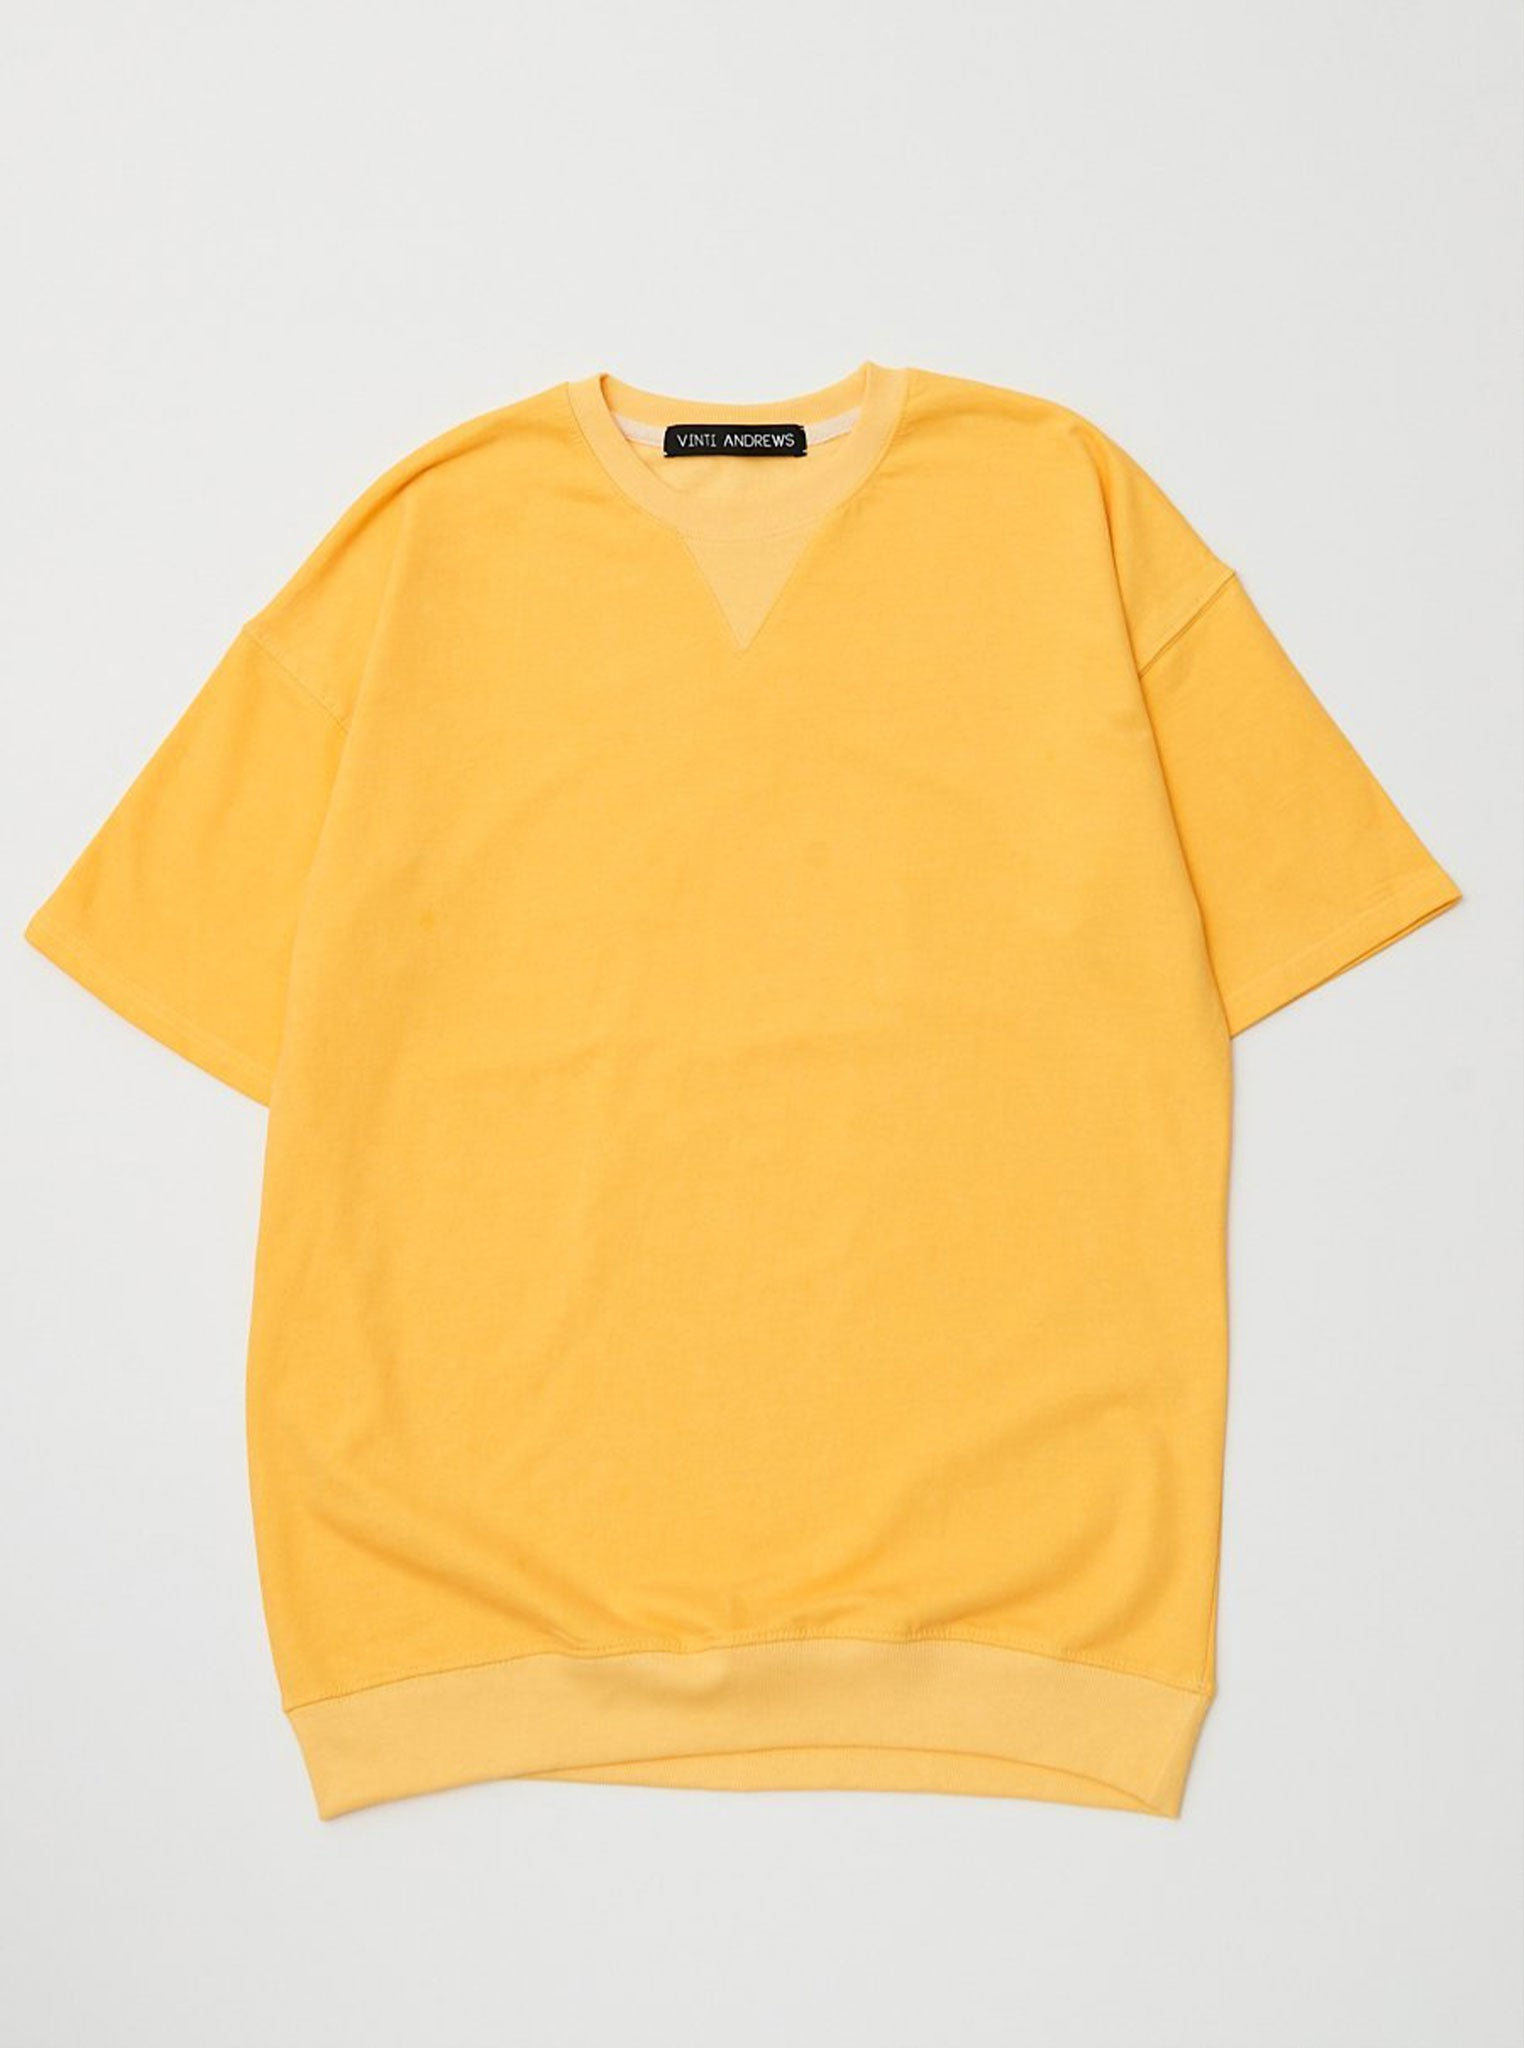 Vinti Andrews Short Sleeves Sweatshirt Yellow